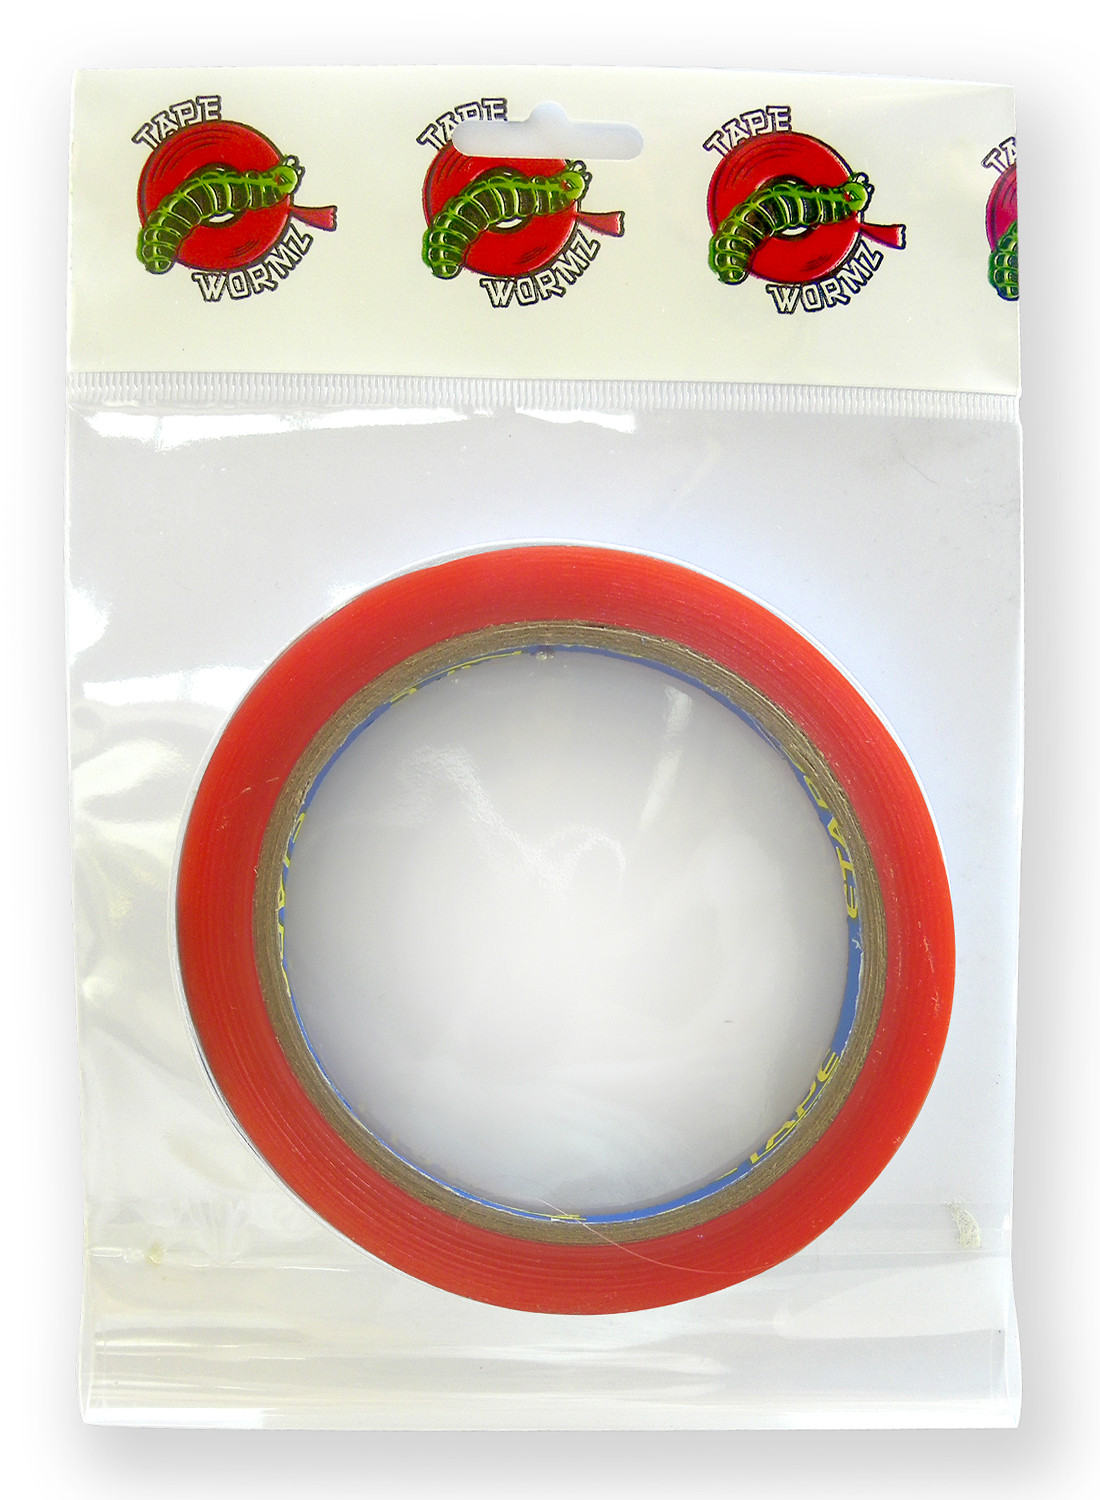 TWR018 - Tape Wormz Red Double Sided High Tack Tape - 6mm x 10m